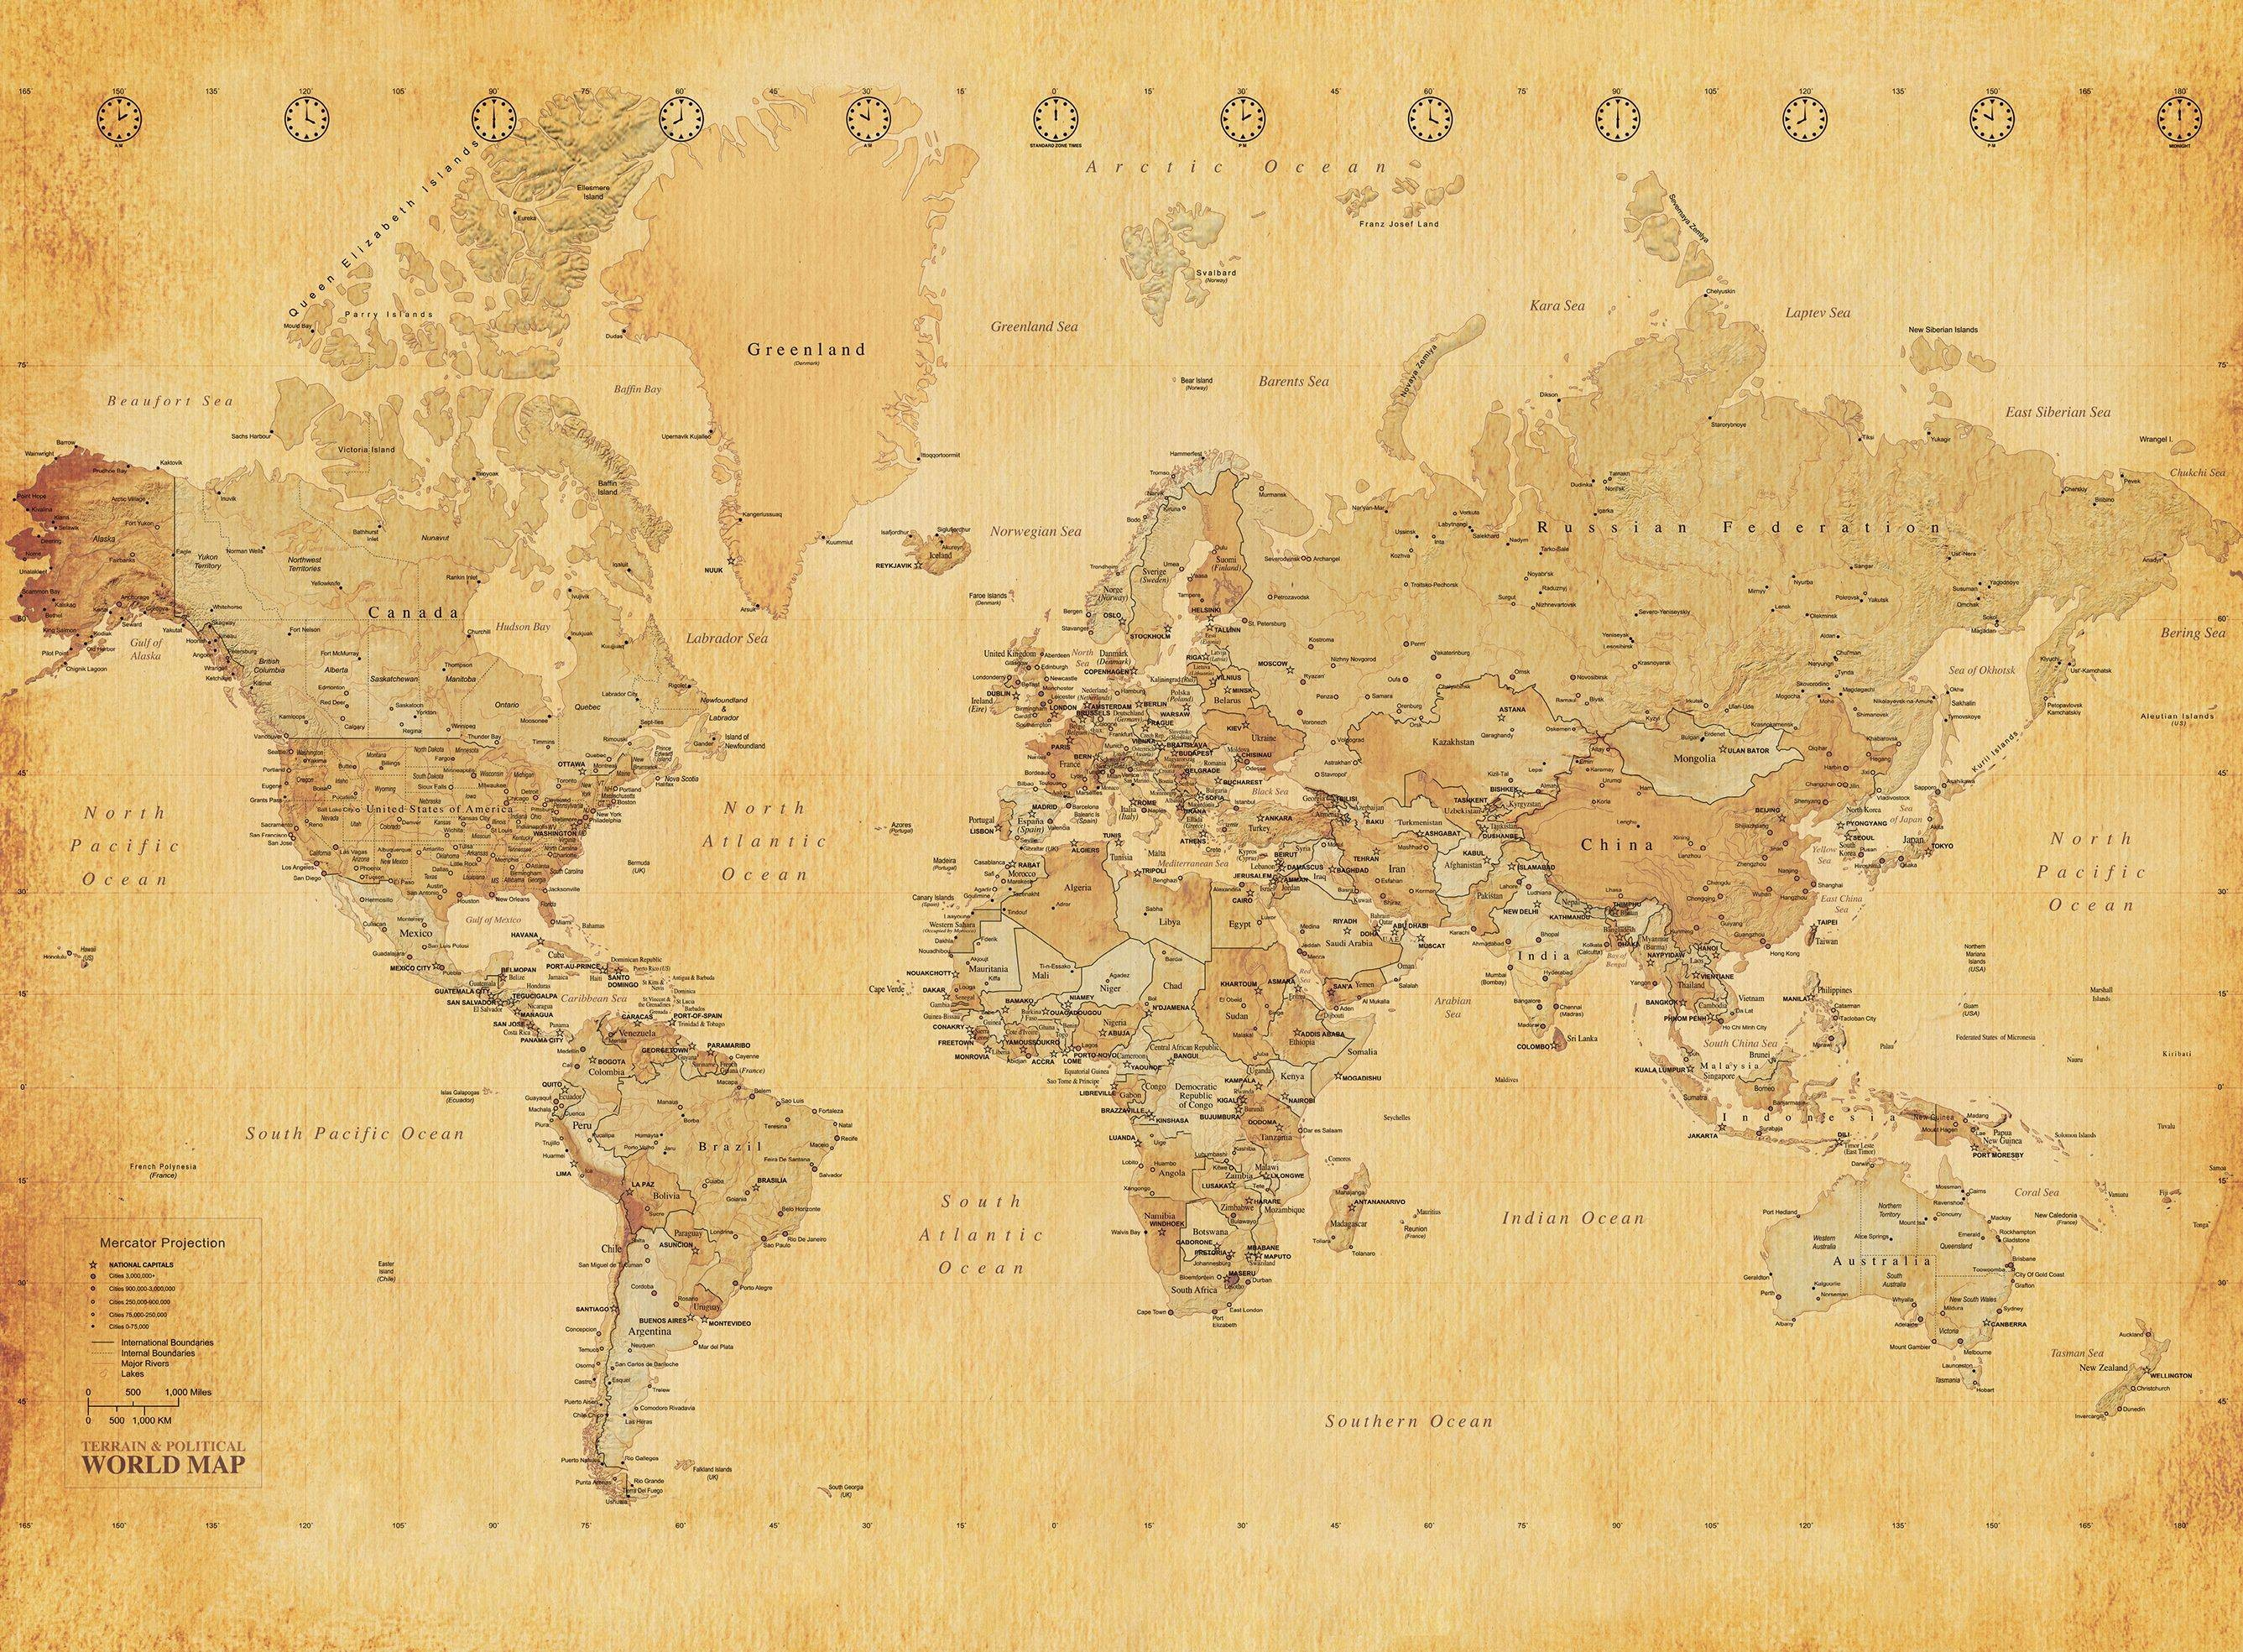 World map desktop wallpaper hd 70 images 1920x1200 wallpaper antique map compass background 1920x1200 pic download gumiabroncs Images